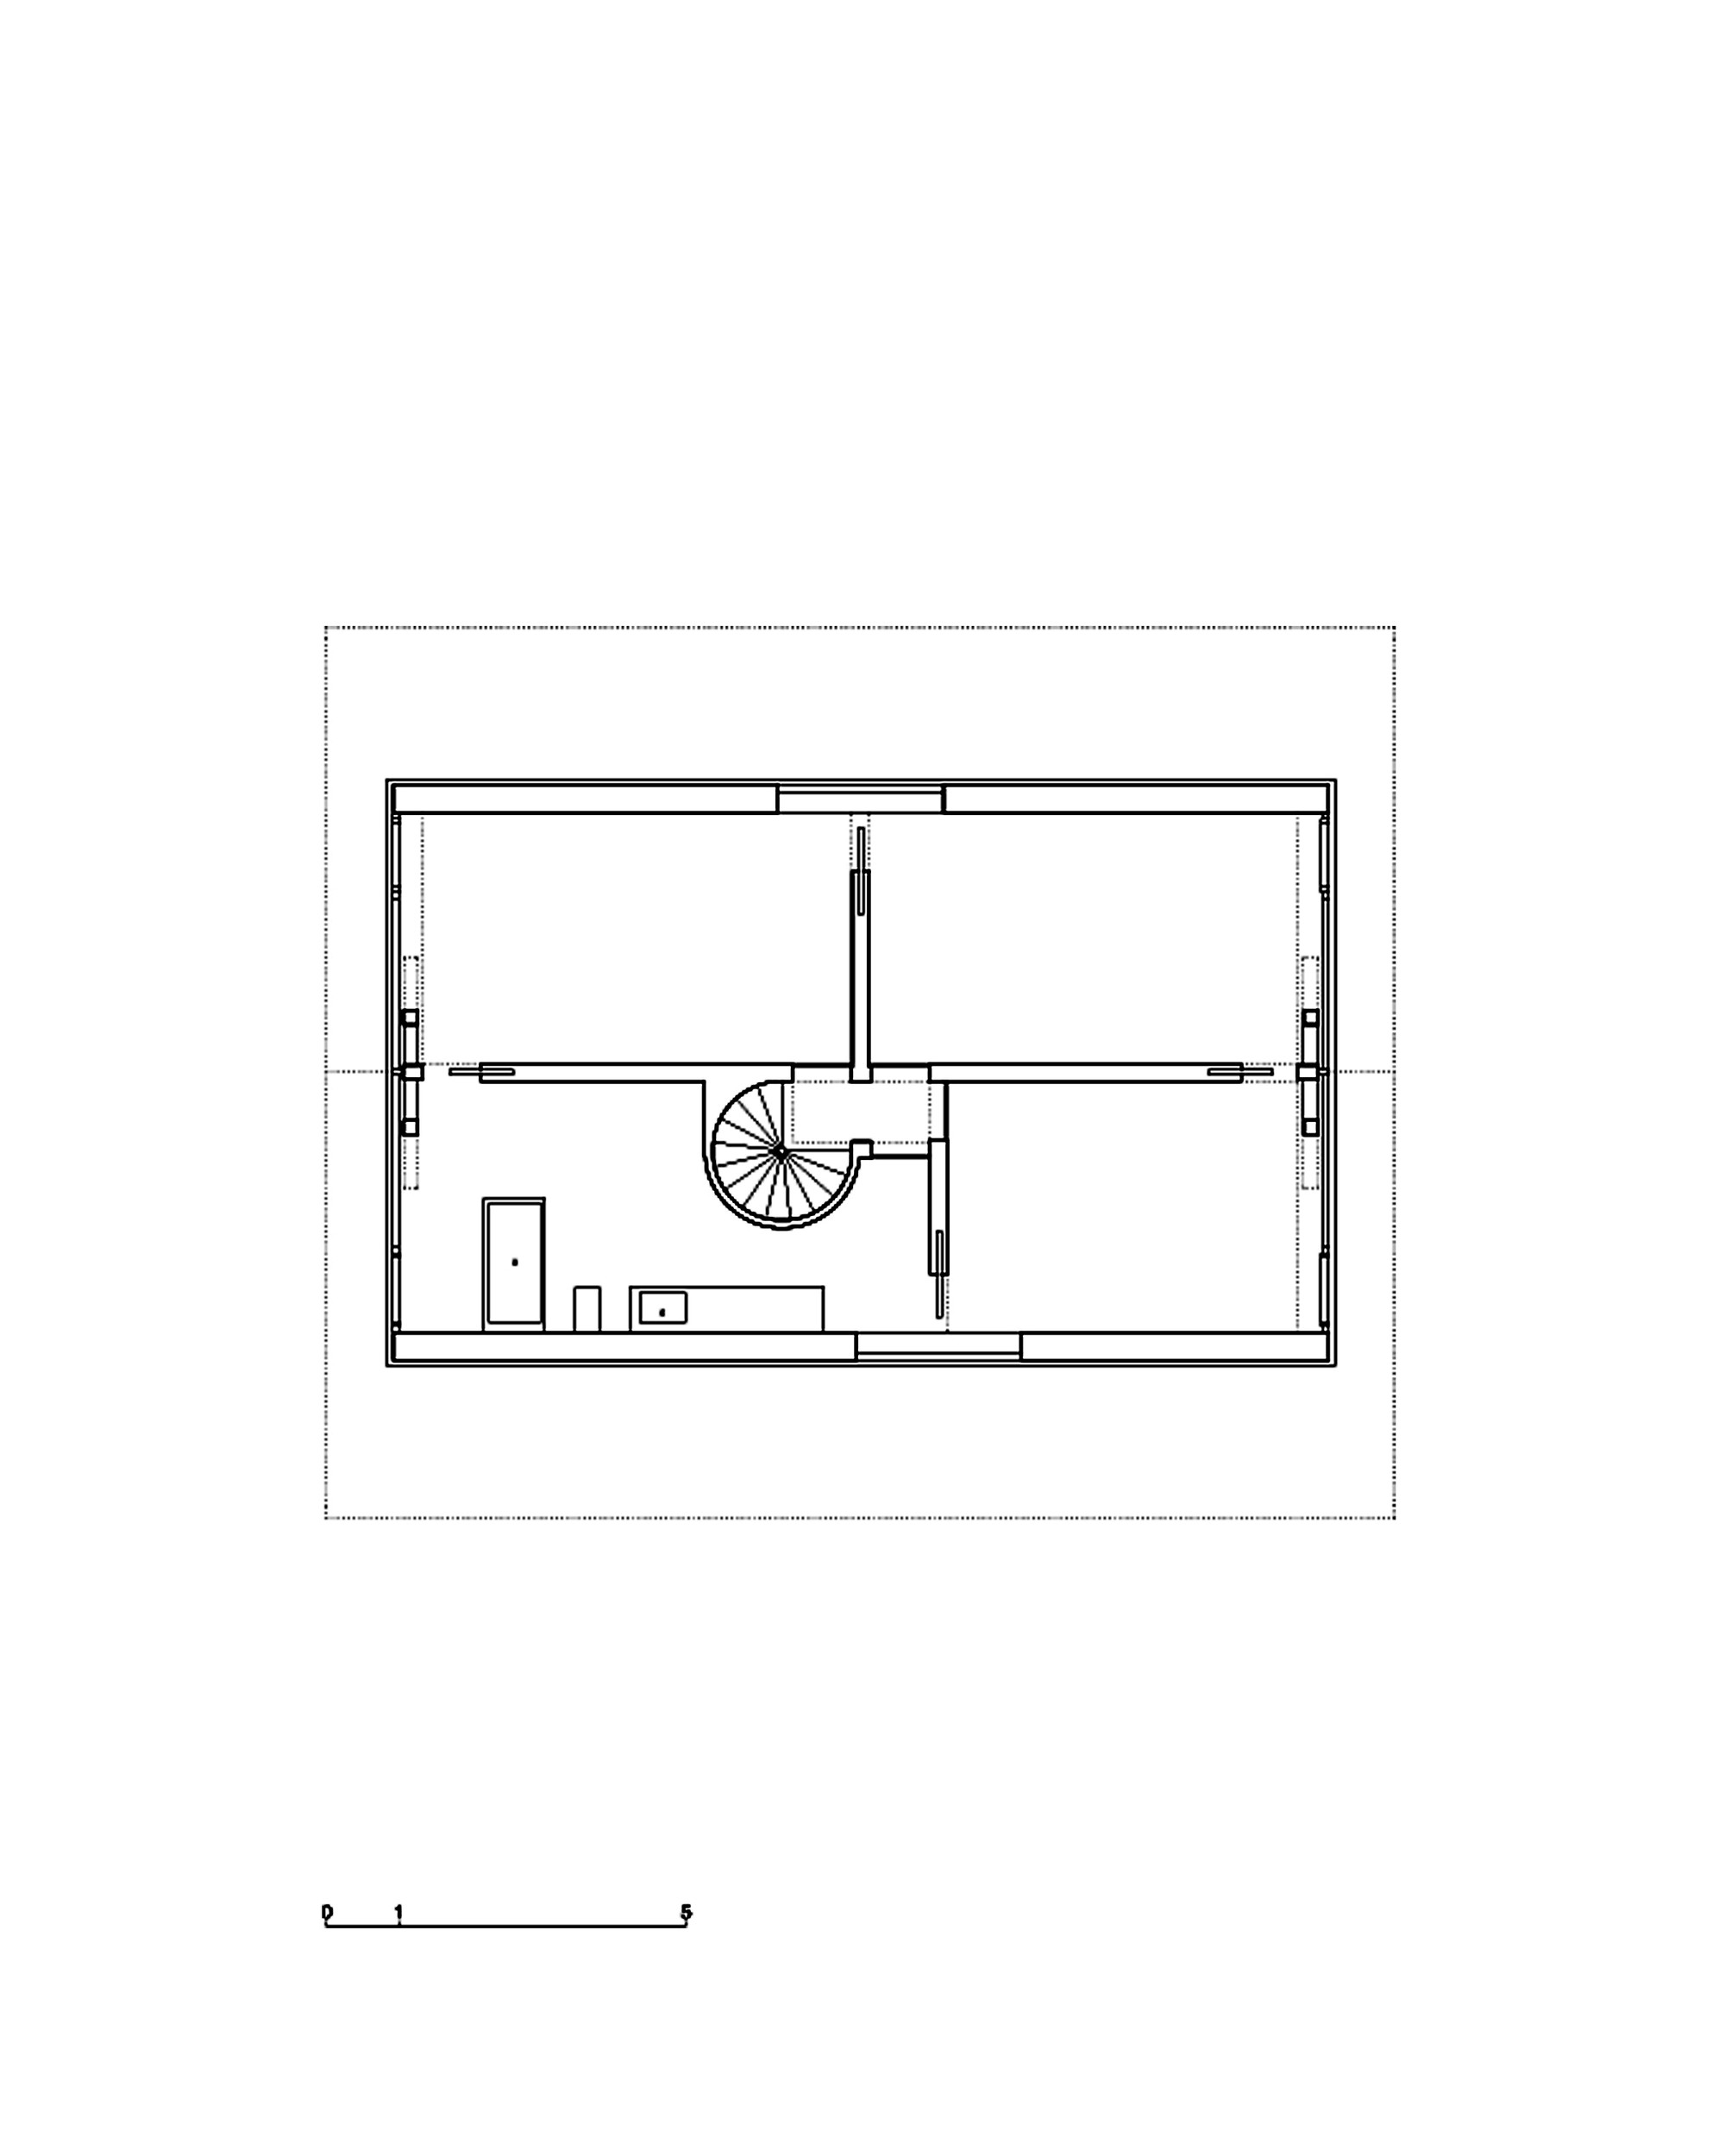 Southern Living House Plans | Find Floor Plans, Home